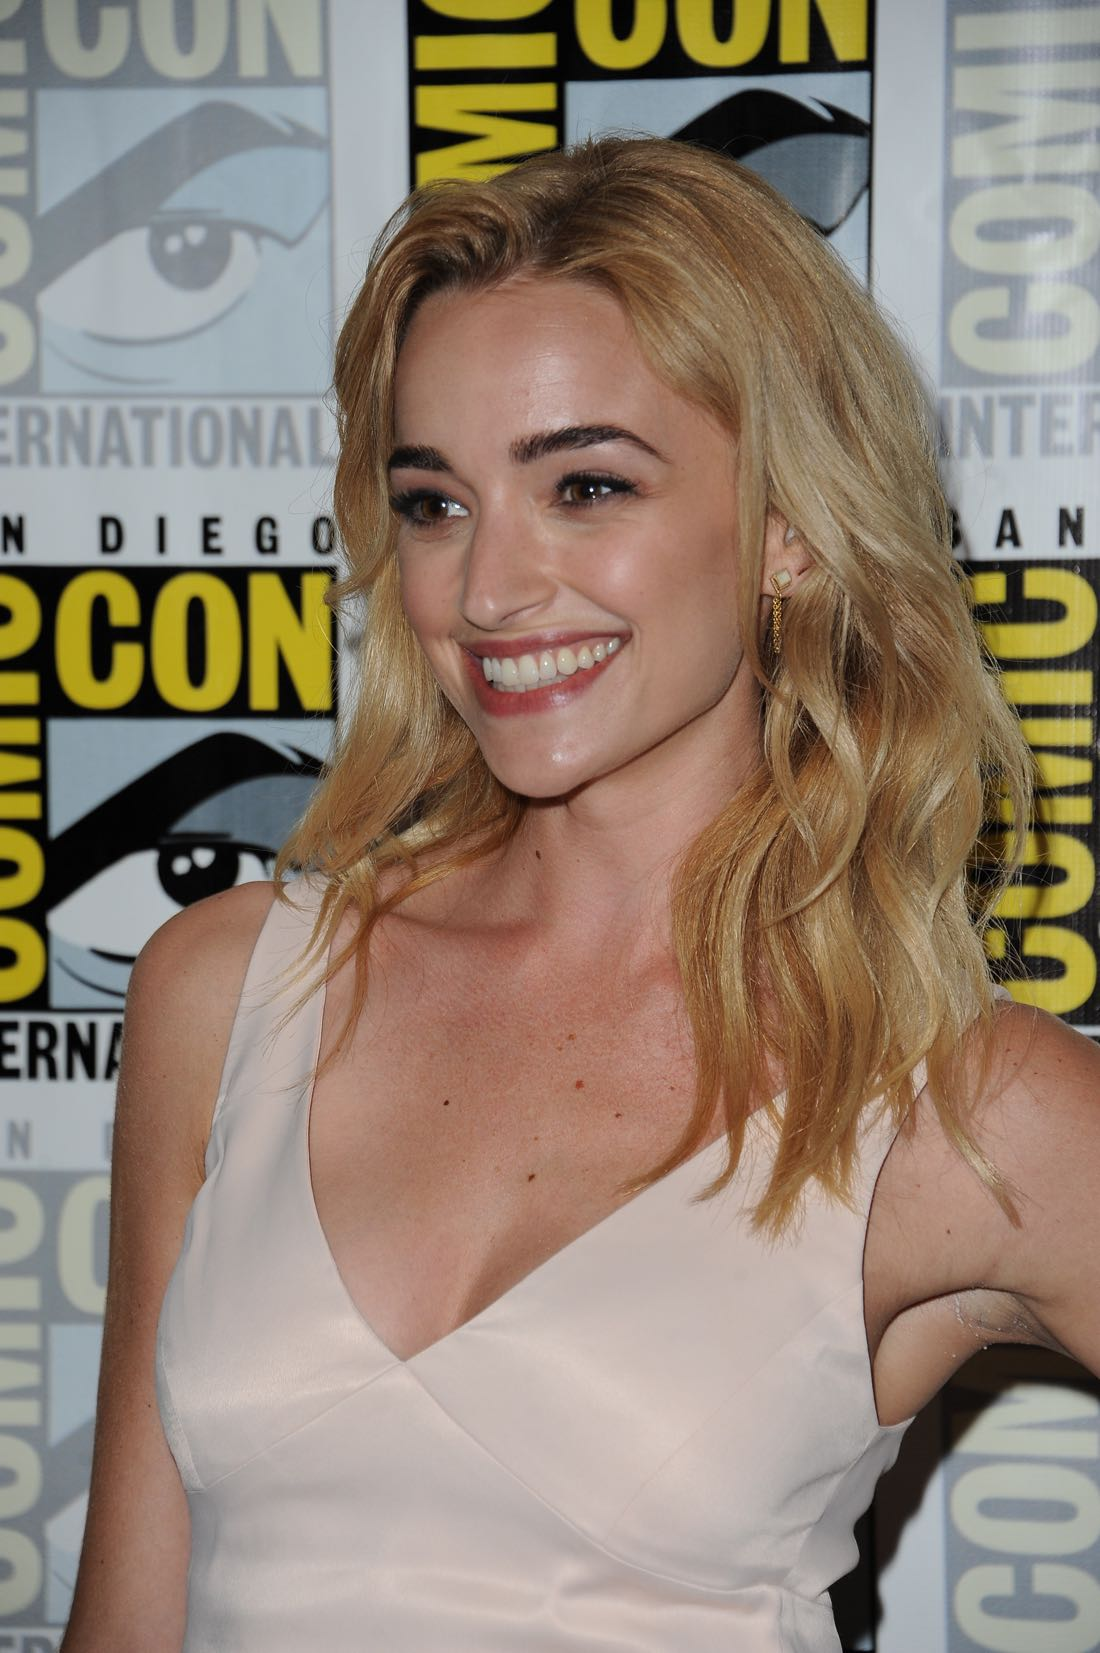 FOX FANFARE AT SAN DIEGO COMIC-CON © 2016: THE EXORCIST cast member Brianne Howey during THE EXORCIST press room on Friday, July 22 at the FOX FANFARE AT SAN DIEGO COMIC-CON © 2016. CR: Scott Kirkland/FOX © 2016 FOX BROADCASTING